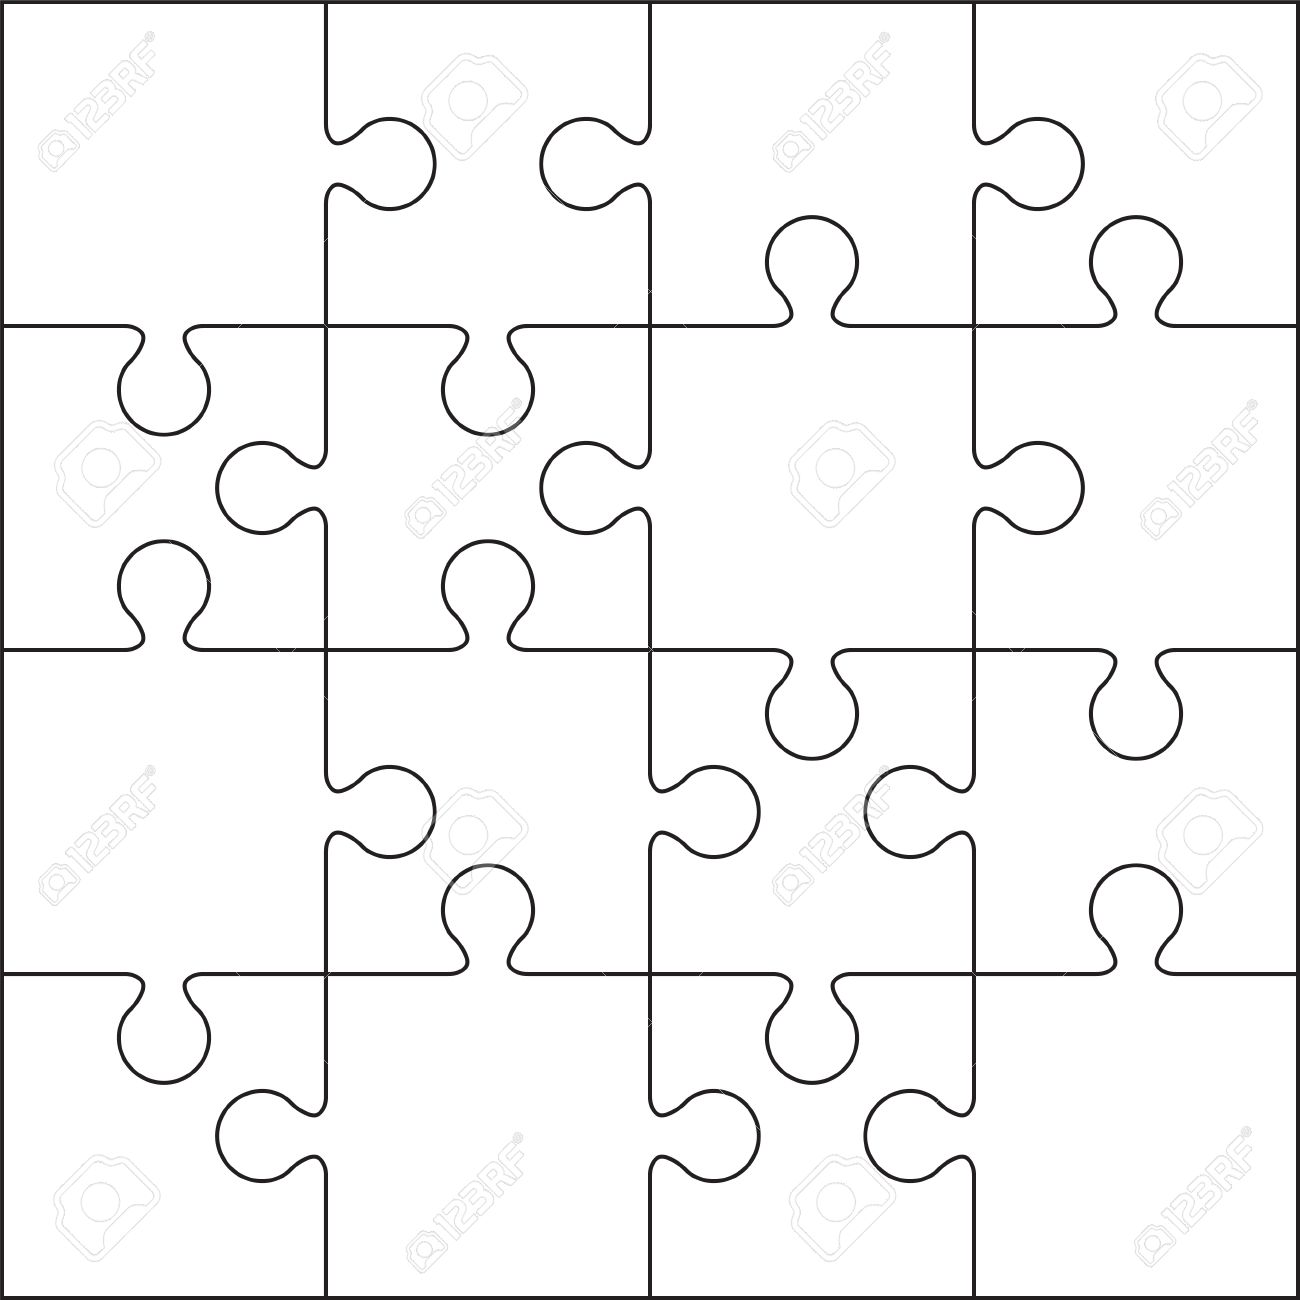 16 Jigsaw Puzzle Blank Template Or Cutting Guidelines Stock Vector